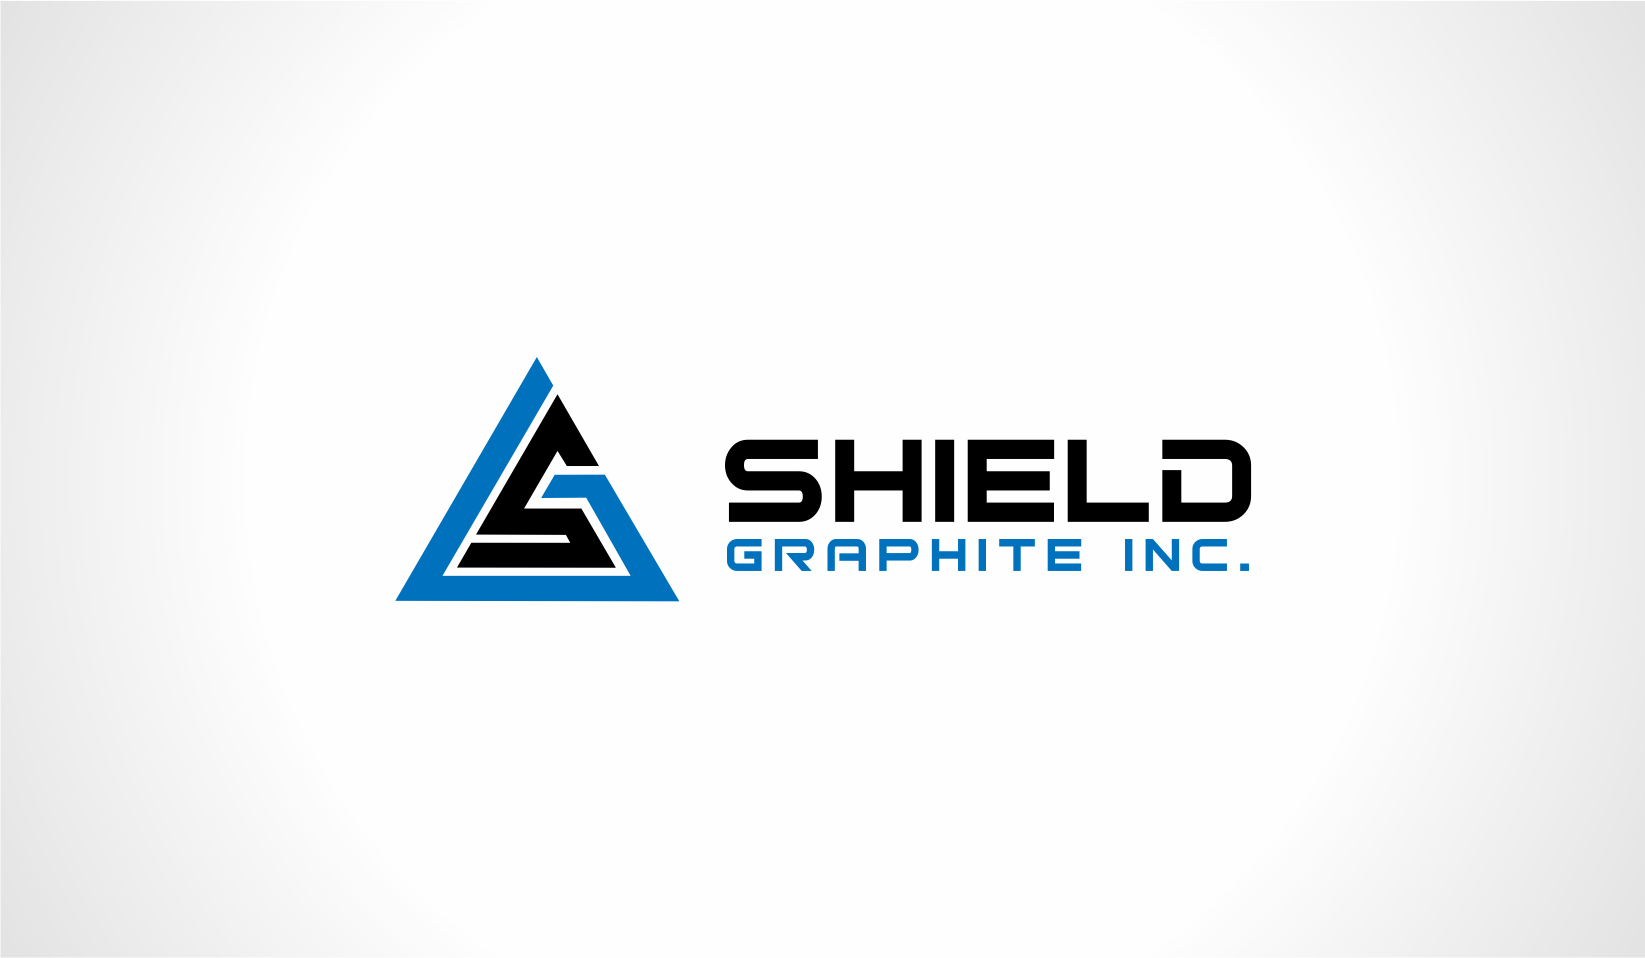 Logo Design by Muhammad Aslam - Entry No. 110 in the Logo Design Contest Imaginative Logo Design for Shield Graphite Inc..